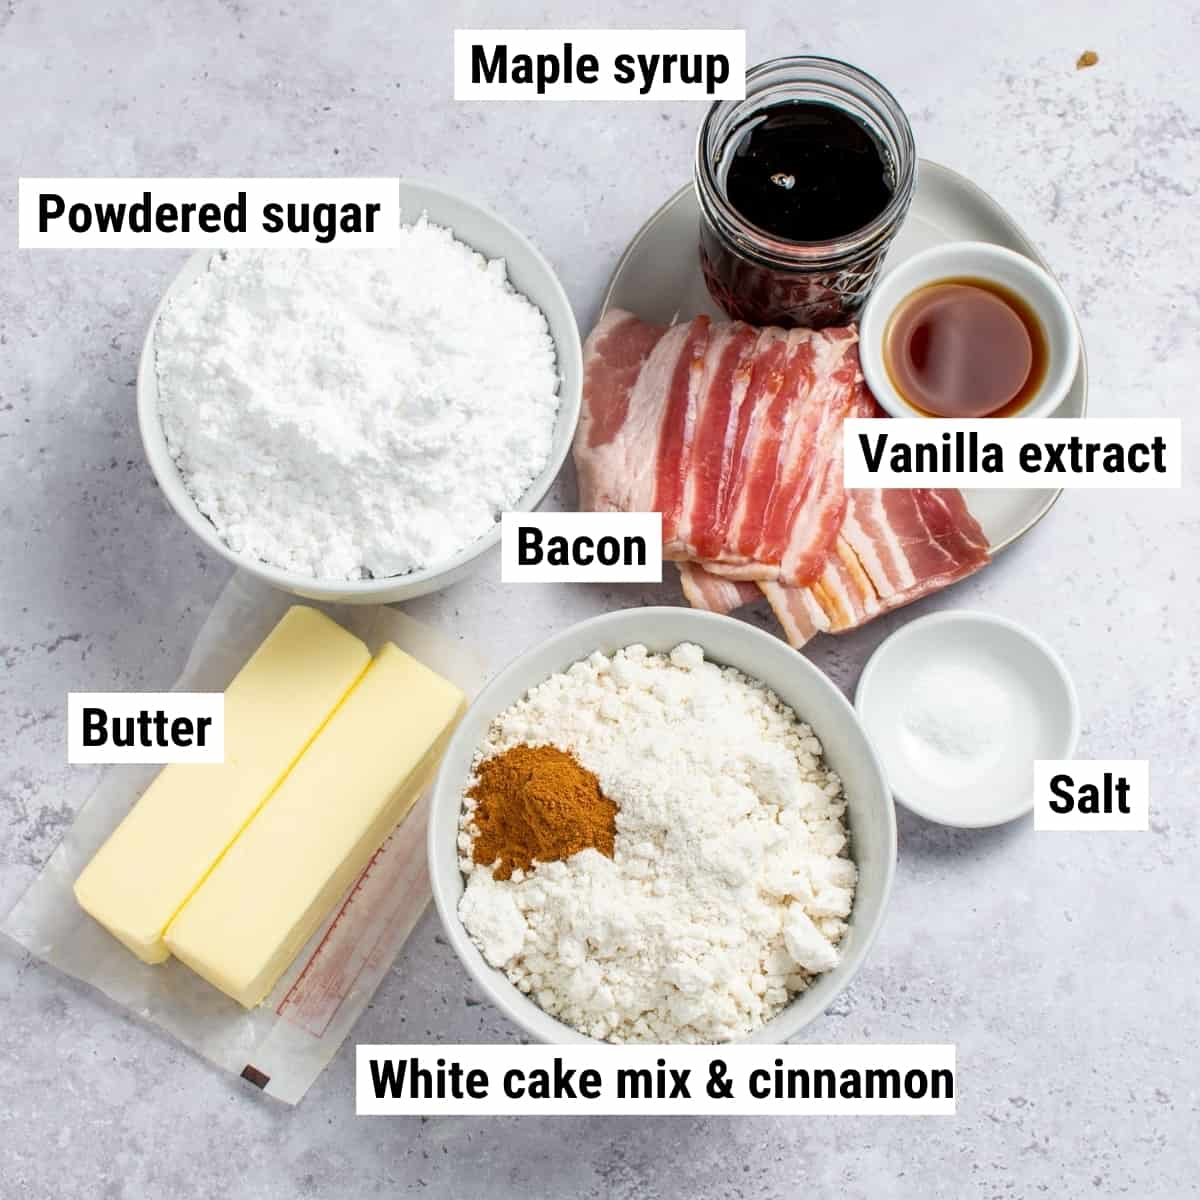 The ingredients used to make bacon maple cupcakes spread out on a table.